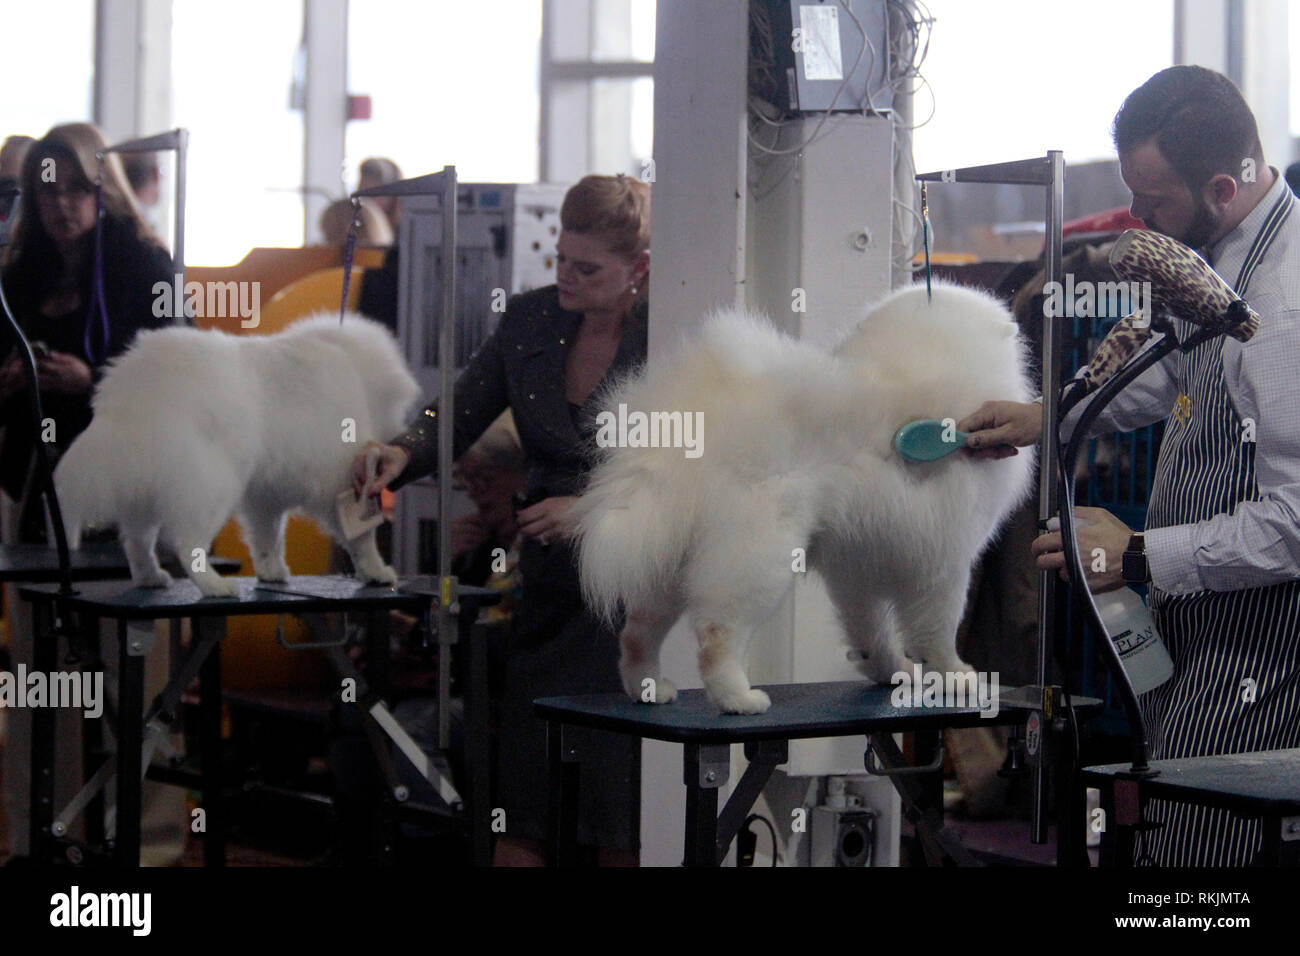 New York, United States. 11th Feb, 2019. Westminster Dog Show - New York City, 11 February, 2019: Alaskan Eskimo's Tee, in the foreground, and Lulu, in the background, being groomed before the Best of Breed Competition at the 143rd Annual Westminster Dog Show in New York City. Credit: Adam Stoltman/Alamy Live News - Stock Image